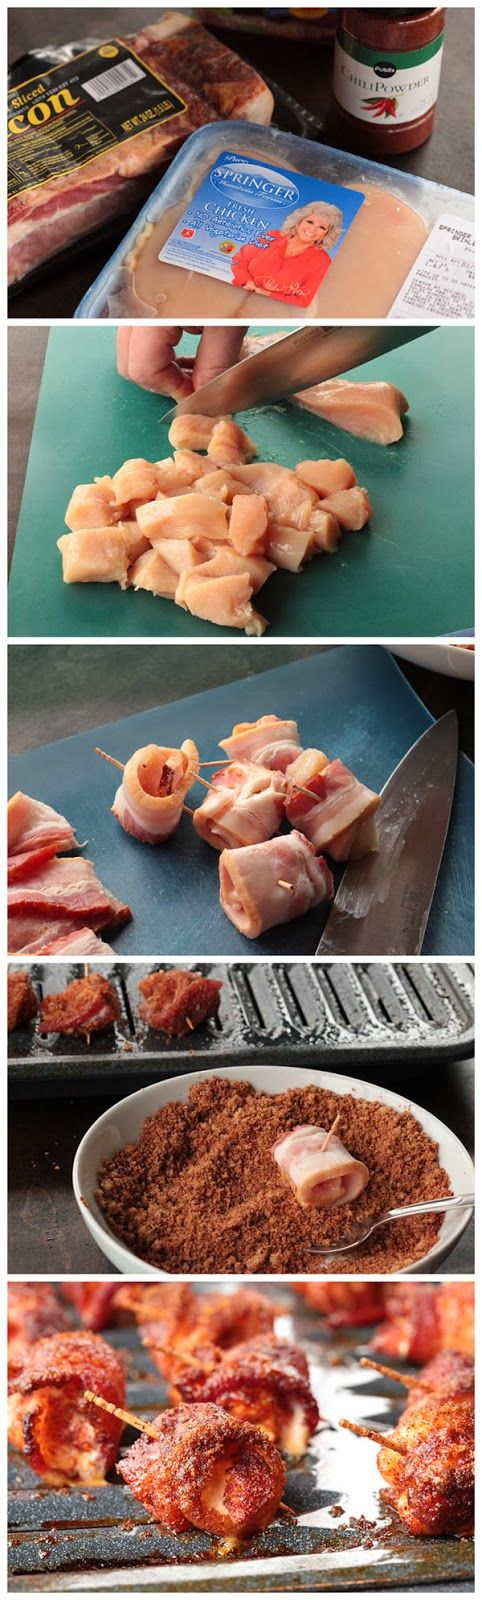 Sweet Bacon Wrapped Chicken Bites - Ingredients: 1 1/4 lbs boneless skinless chicken breasts (about 4) .... 1 lb sliced bacon .... 2/3 cup firmly packed brown sugar ... 2 tbs chili powder ....